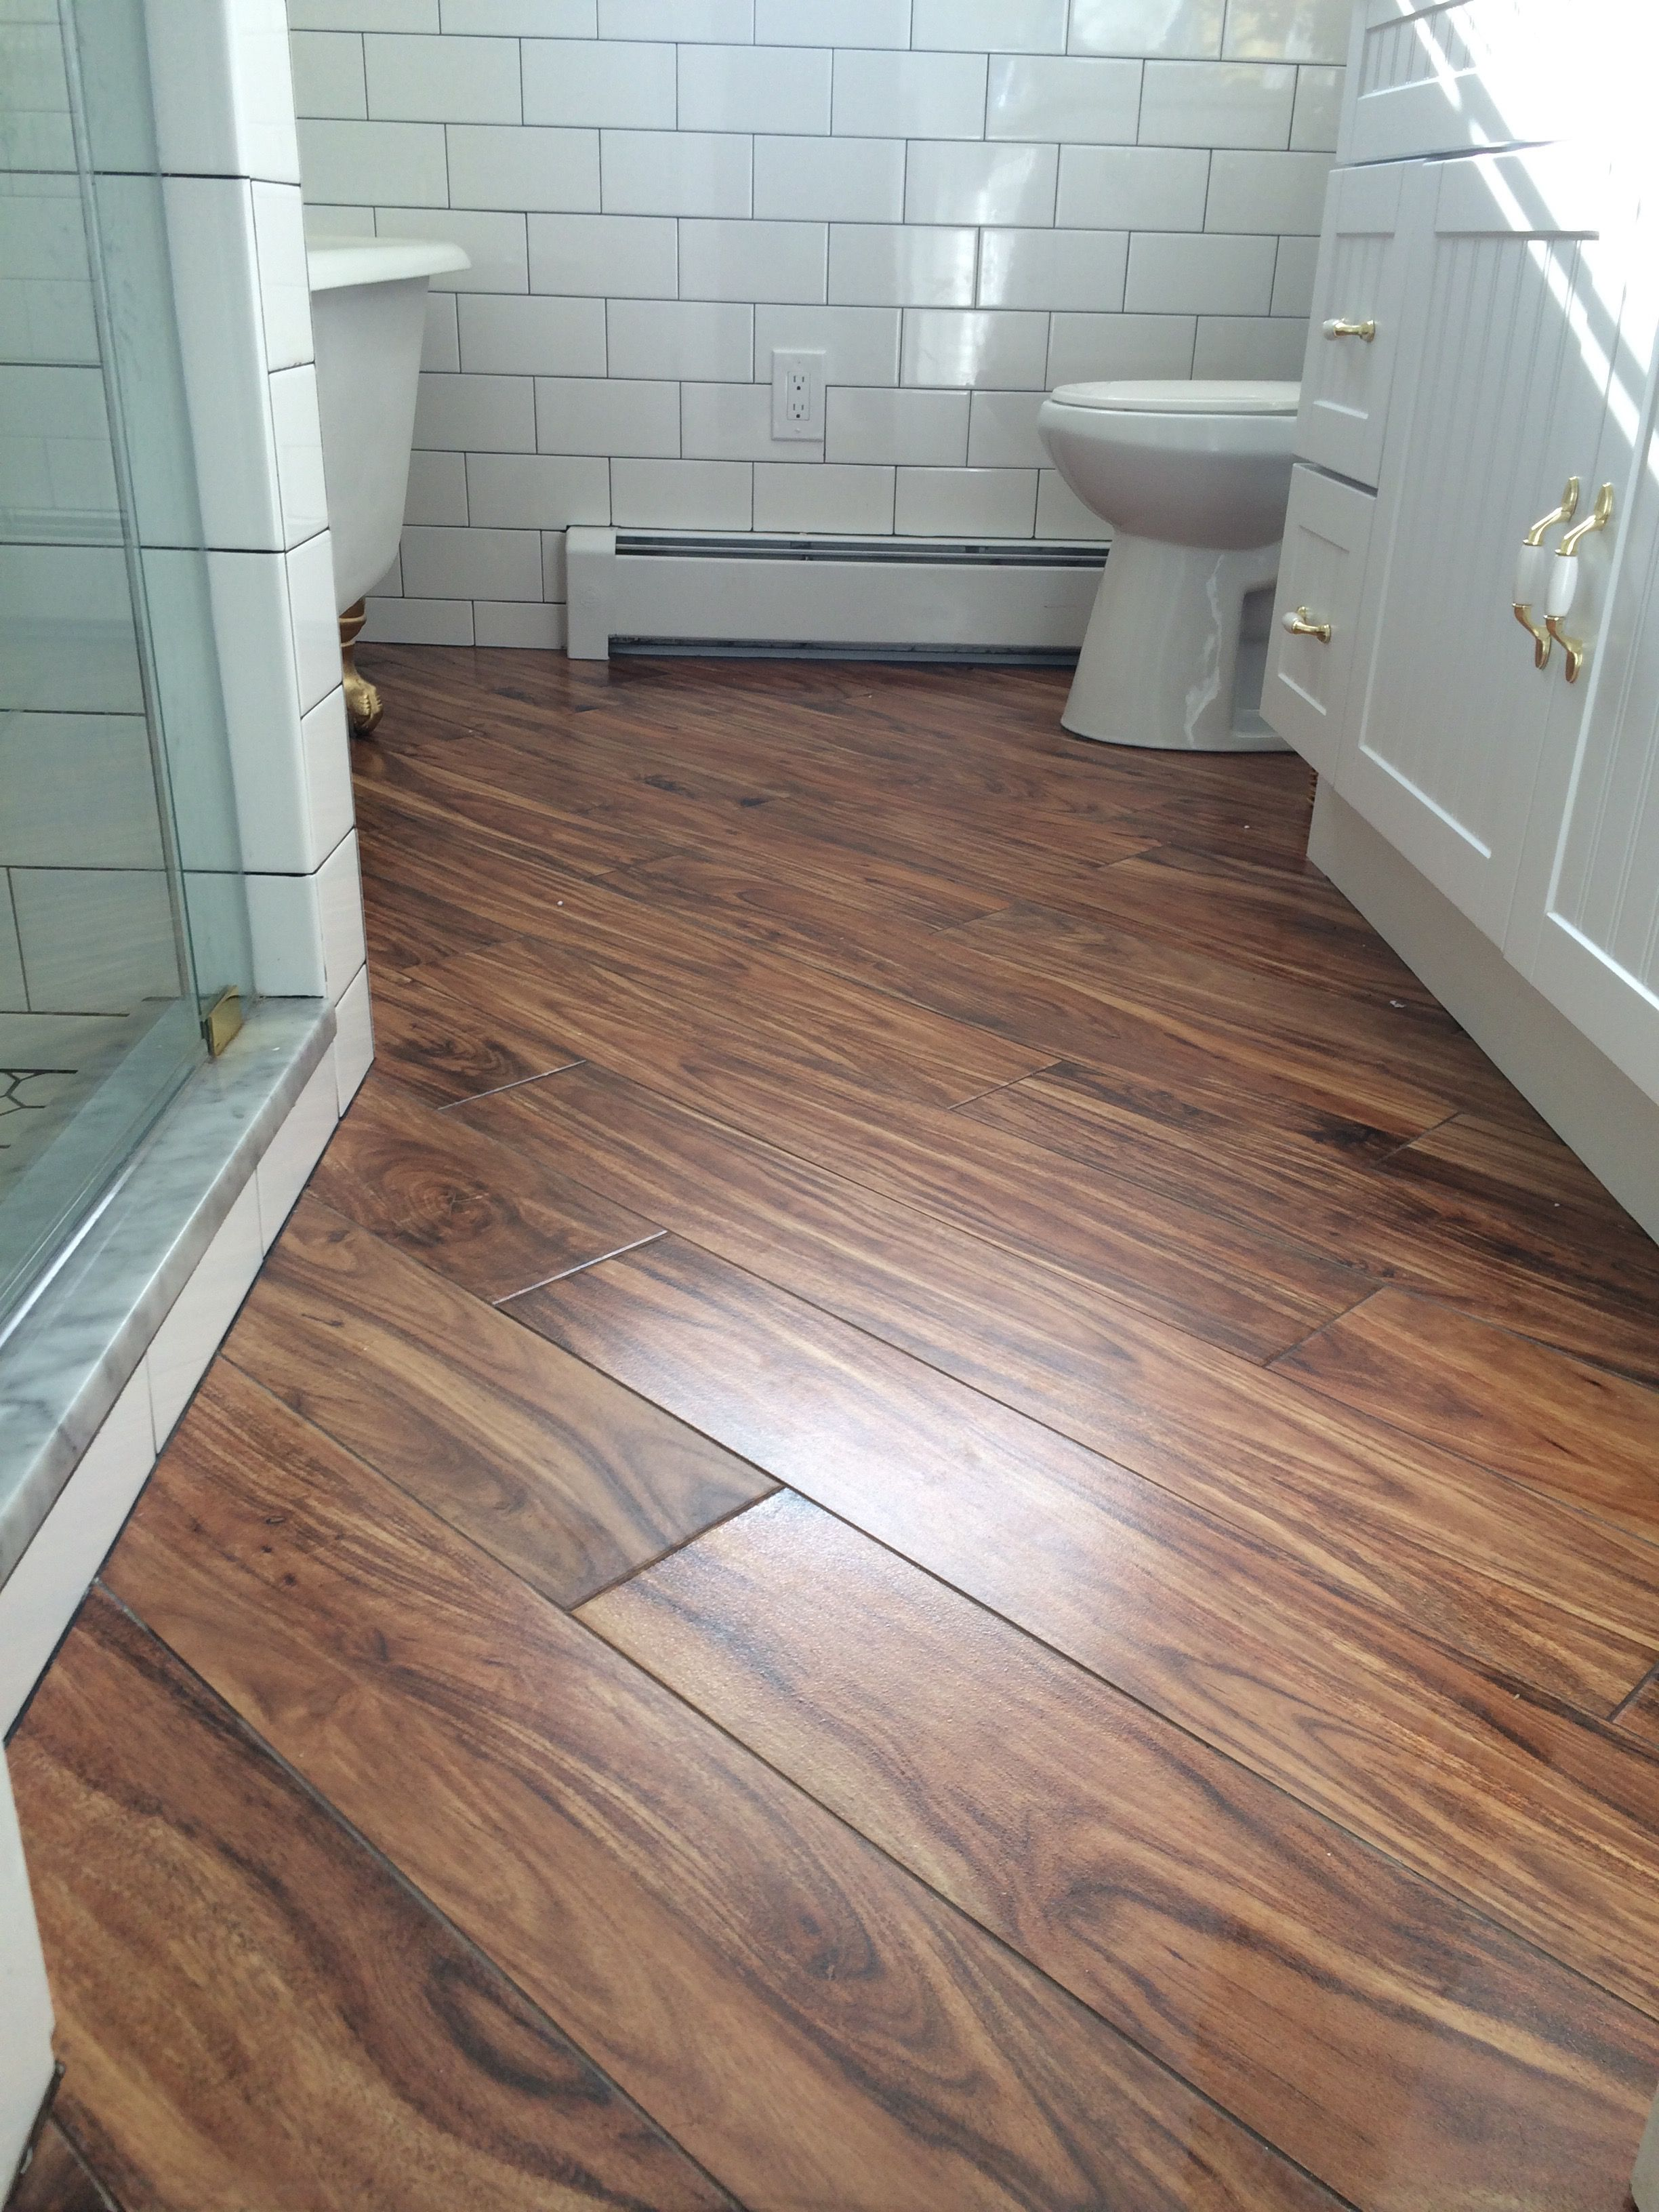 Farmhouse Bathroom Porcelain Wood Tile On A Diagonal